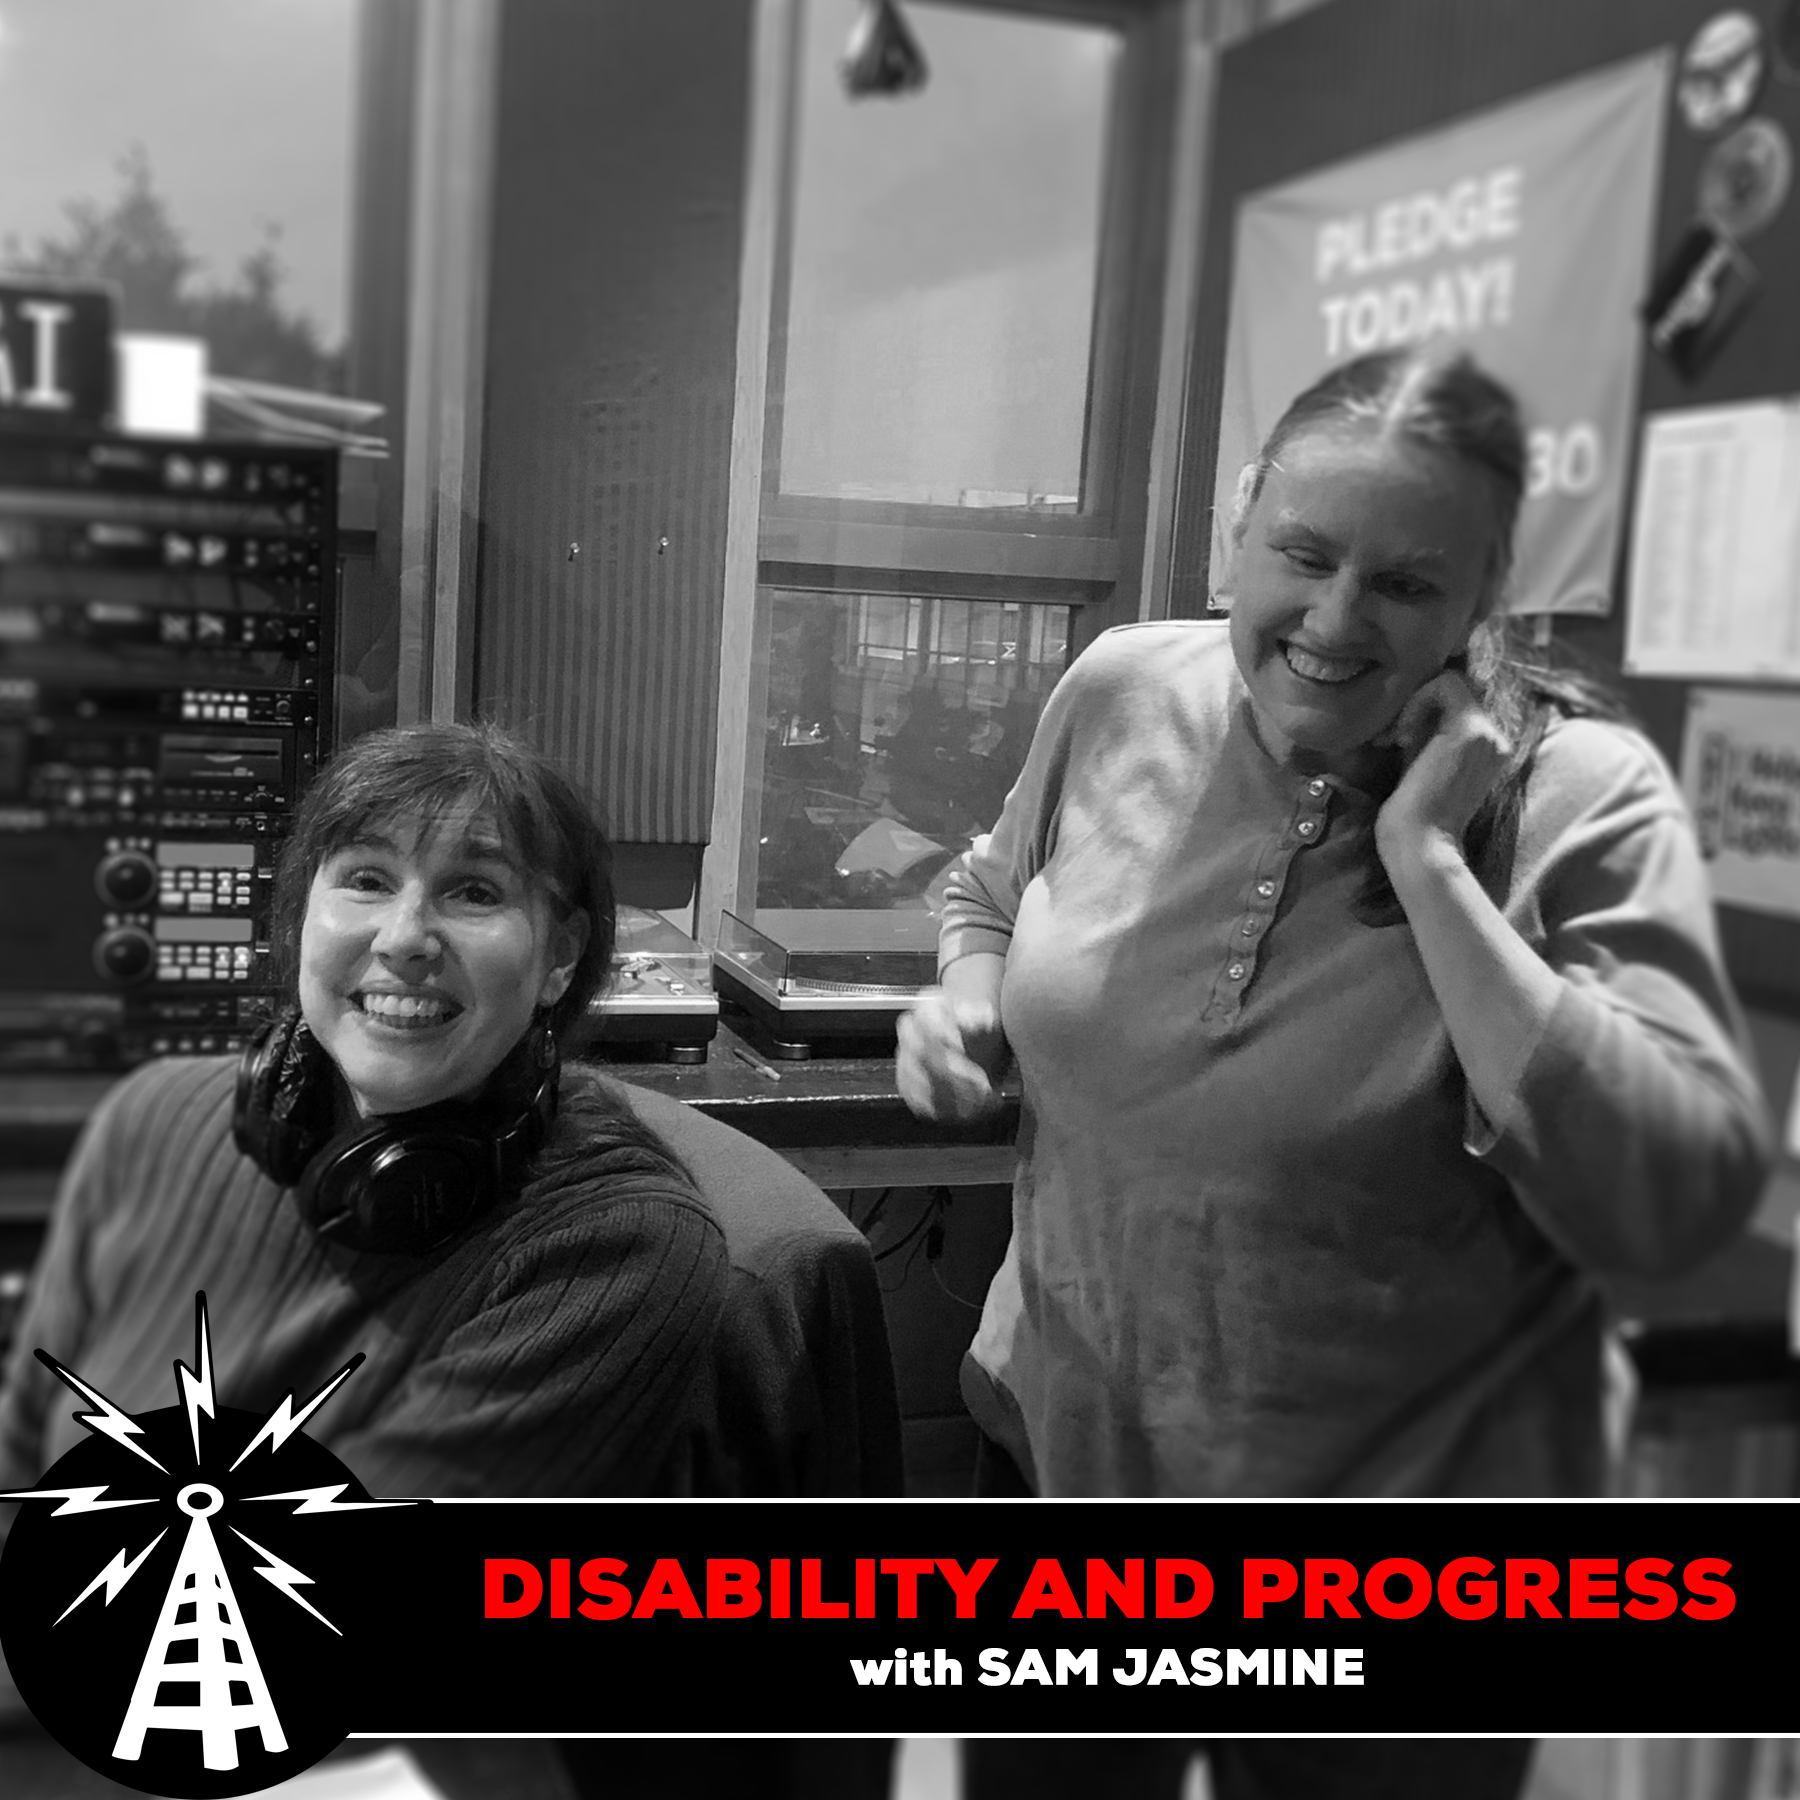 Disability and Progress-November 26, 2020- Closing Disparity Gaps for Disabled Women – with Teighlor McGee and Shiloh of the Black Disability Collective